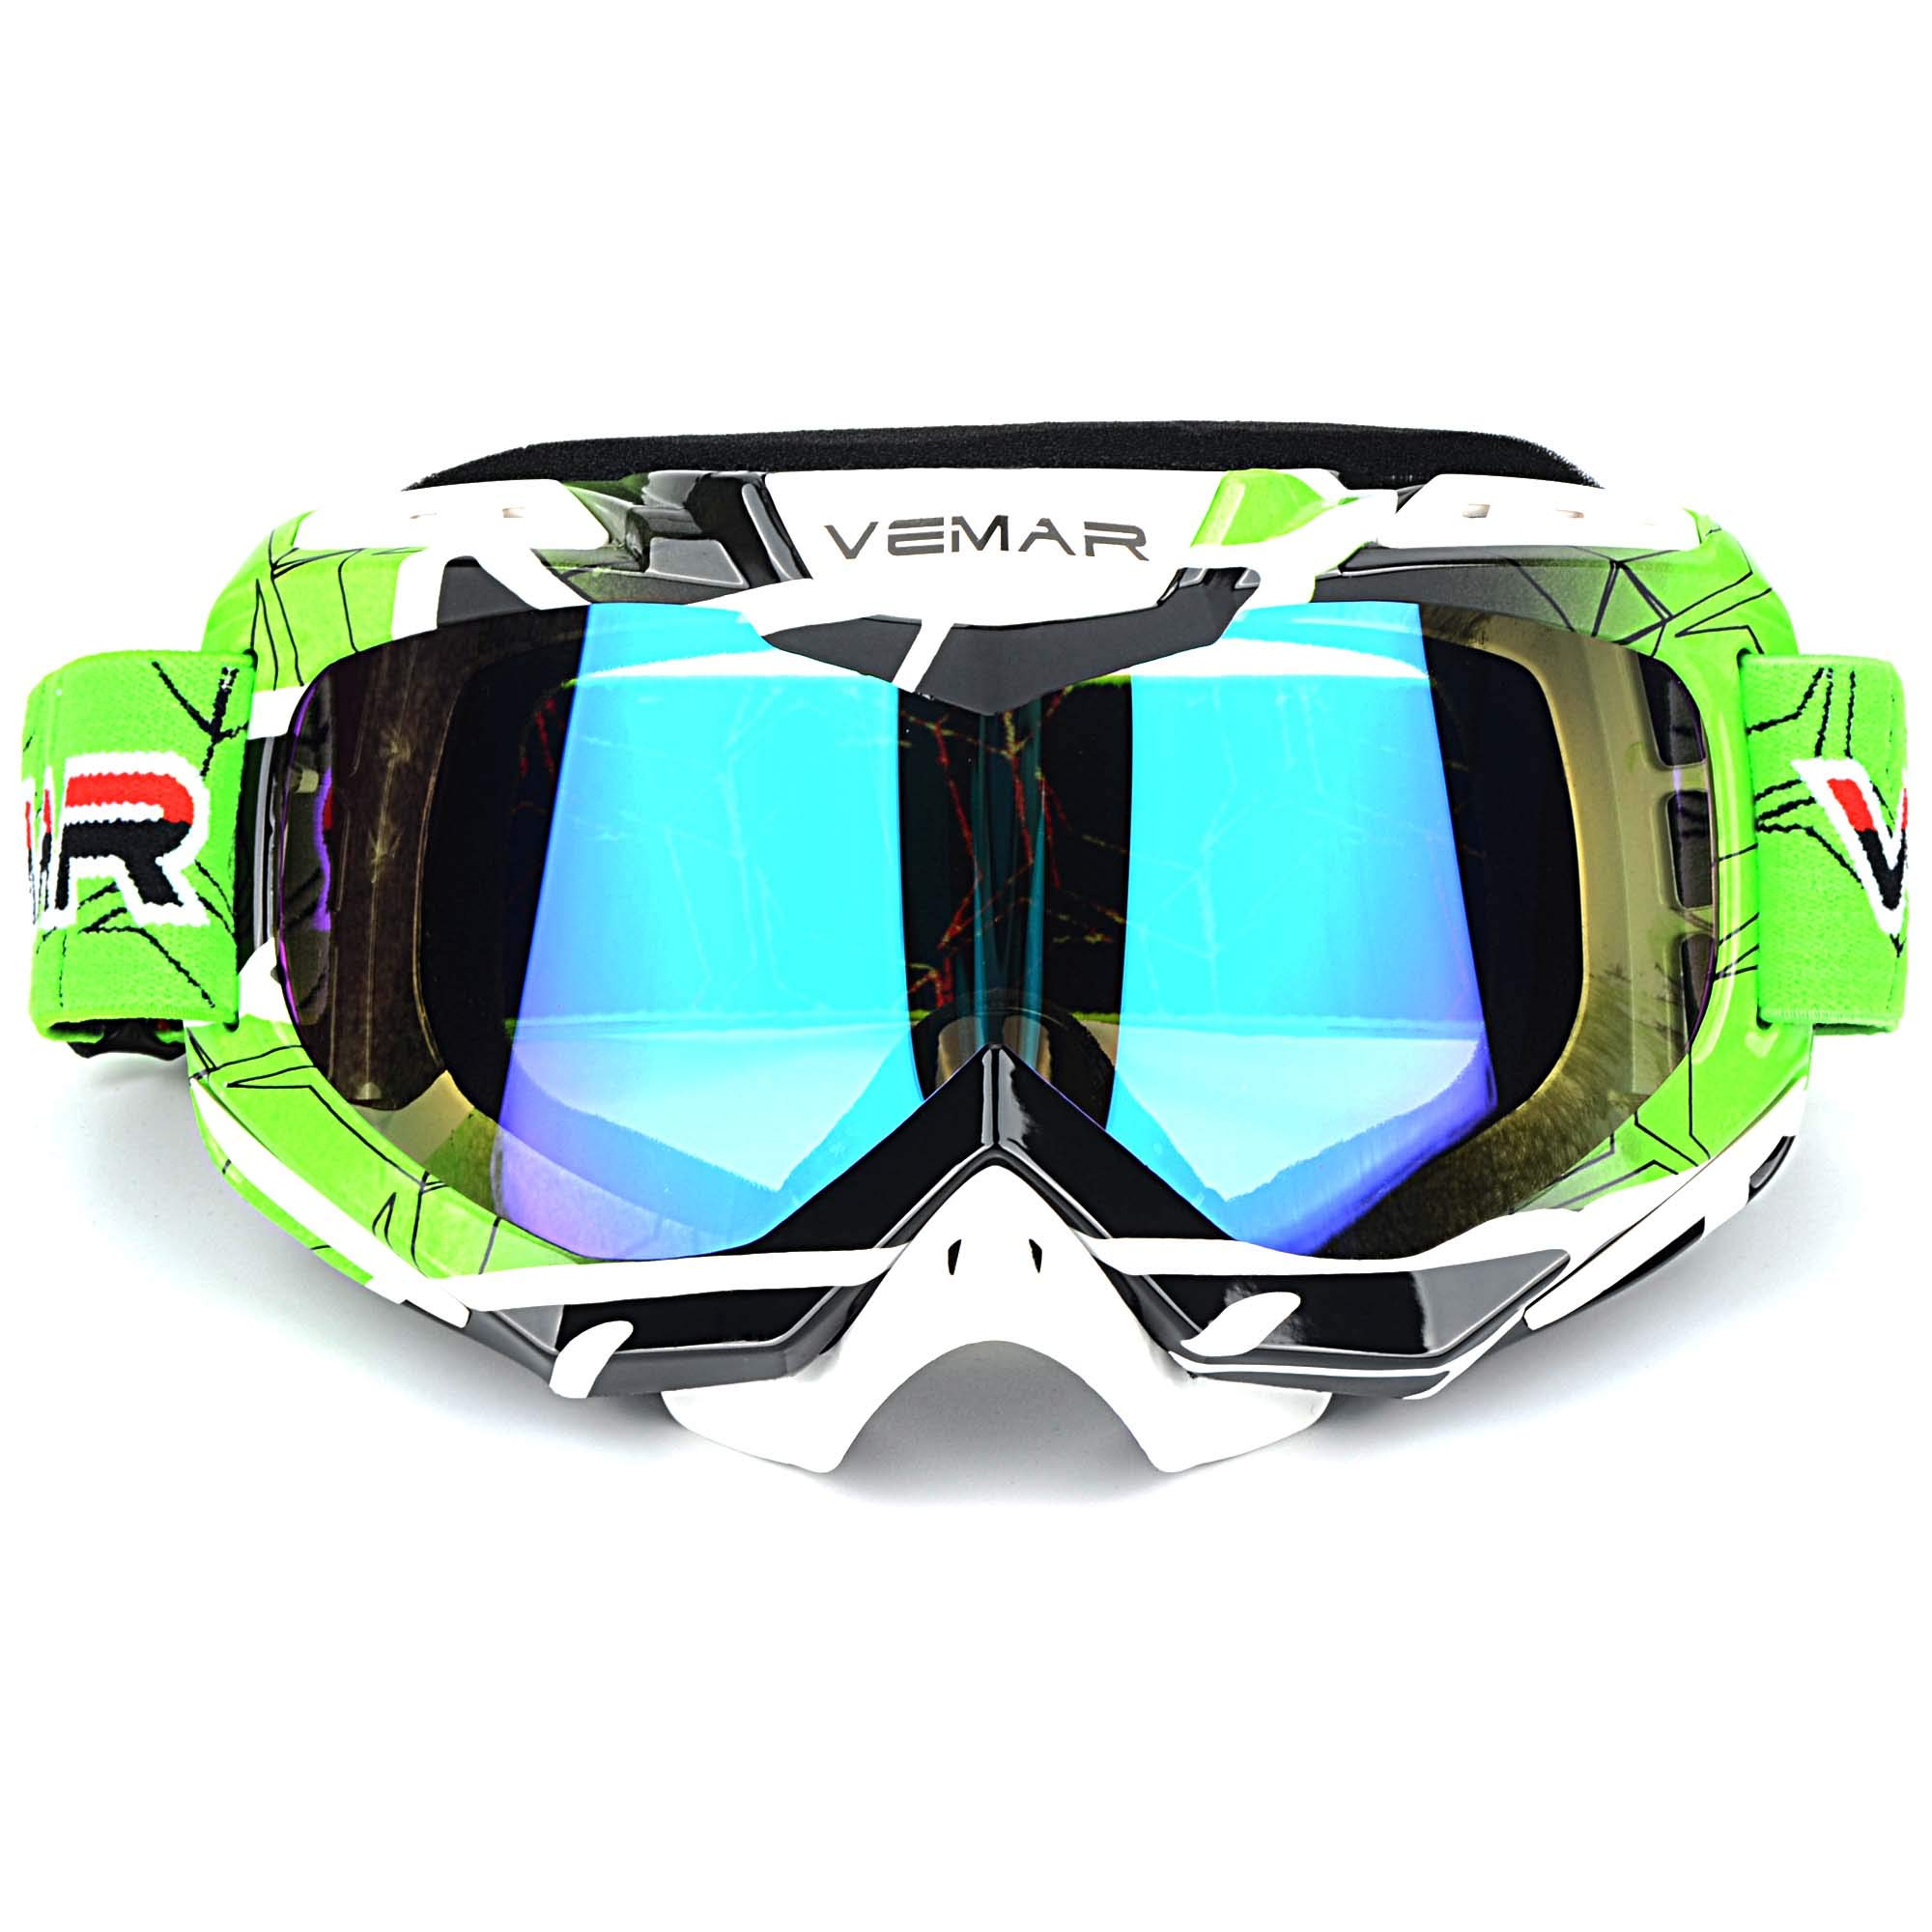 Polarized Sport Motorcycle Motocross Goggles ATV Racing Goggles Dirt Bike Tactical Riding Motorbike Goggle Glasses, Bendable Windproof Dustproof Scratch Resistant Protective Safety Glasses (Green) by Ubelly